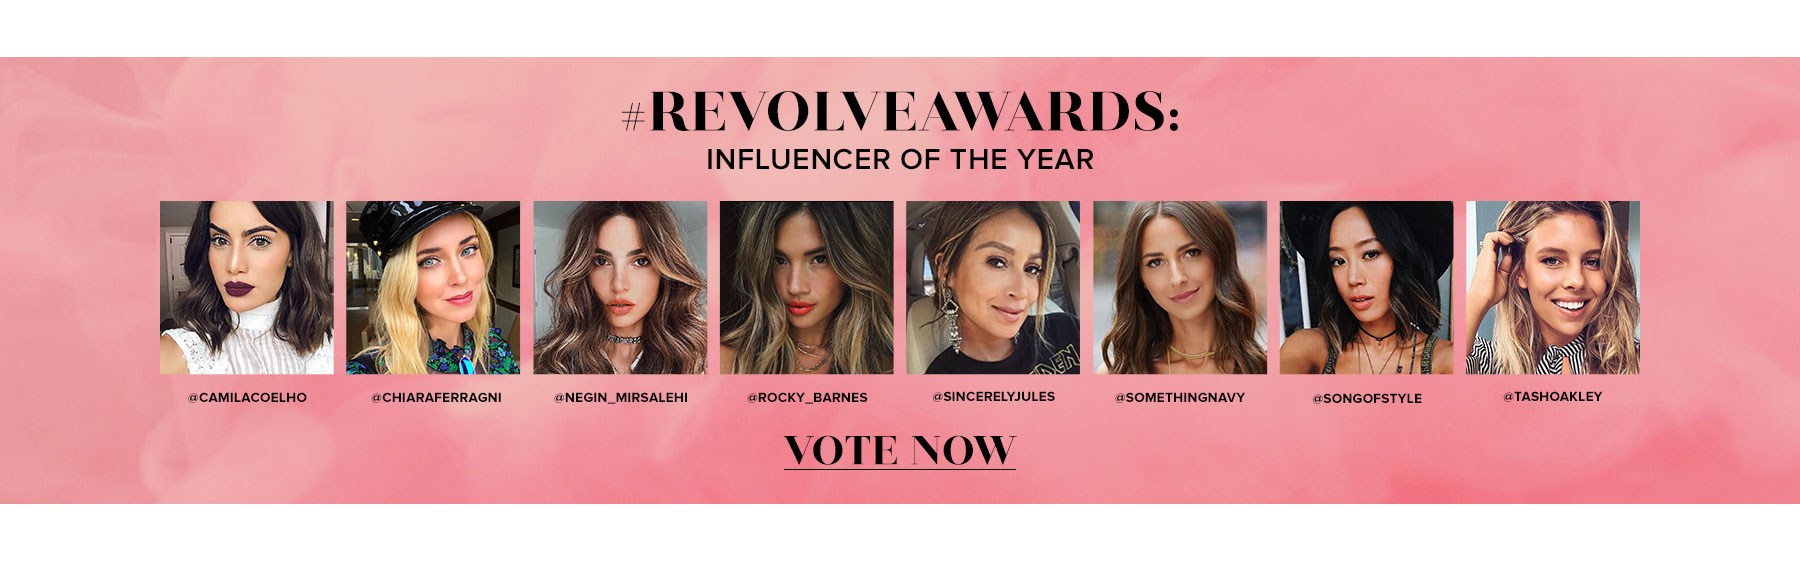 REVOLVEAWARDS. Influencer of the Year. Vote now!